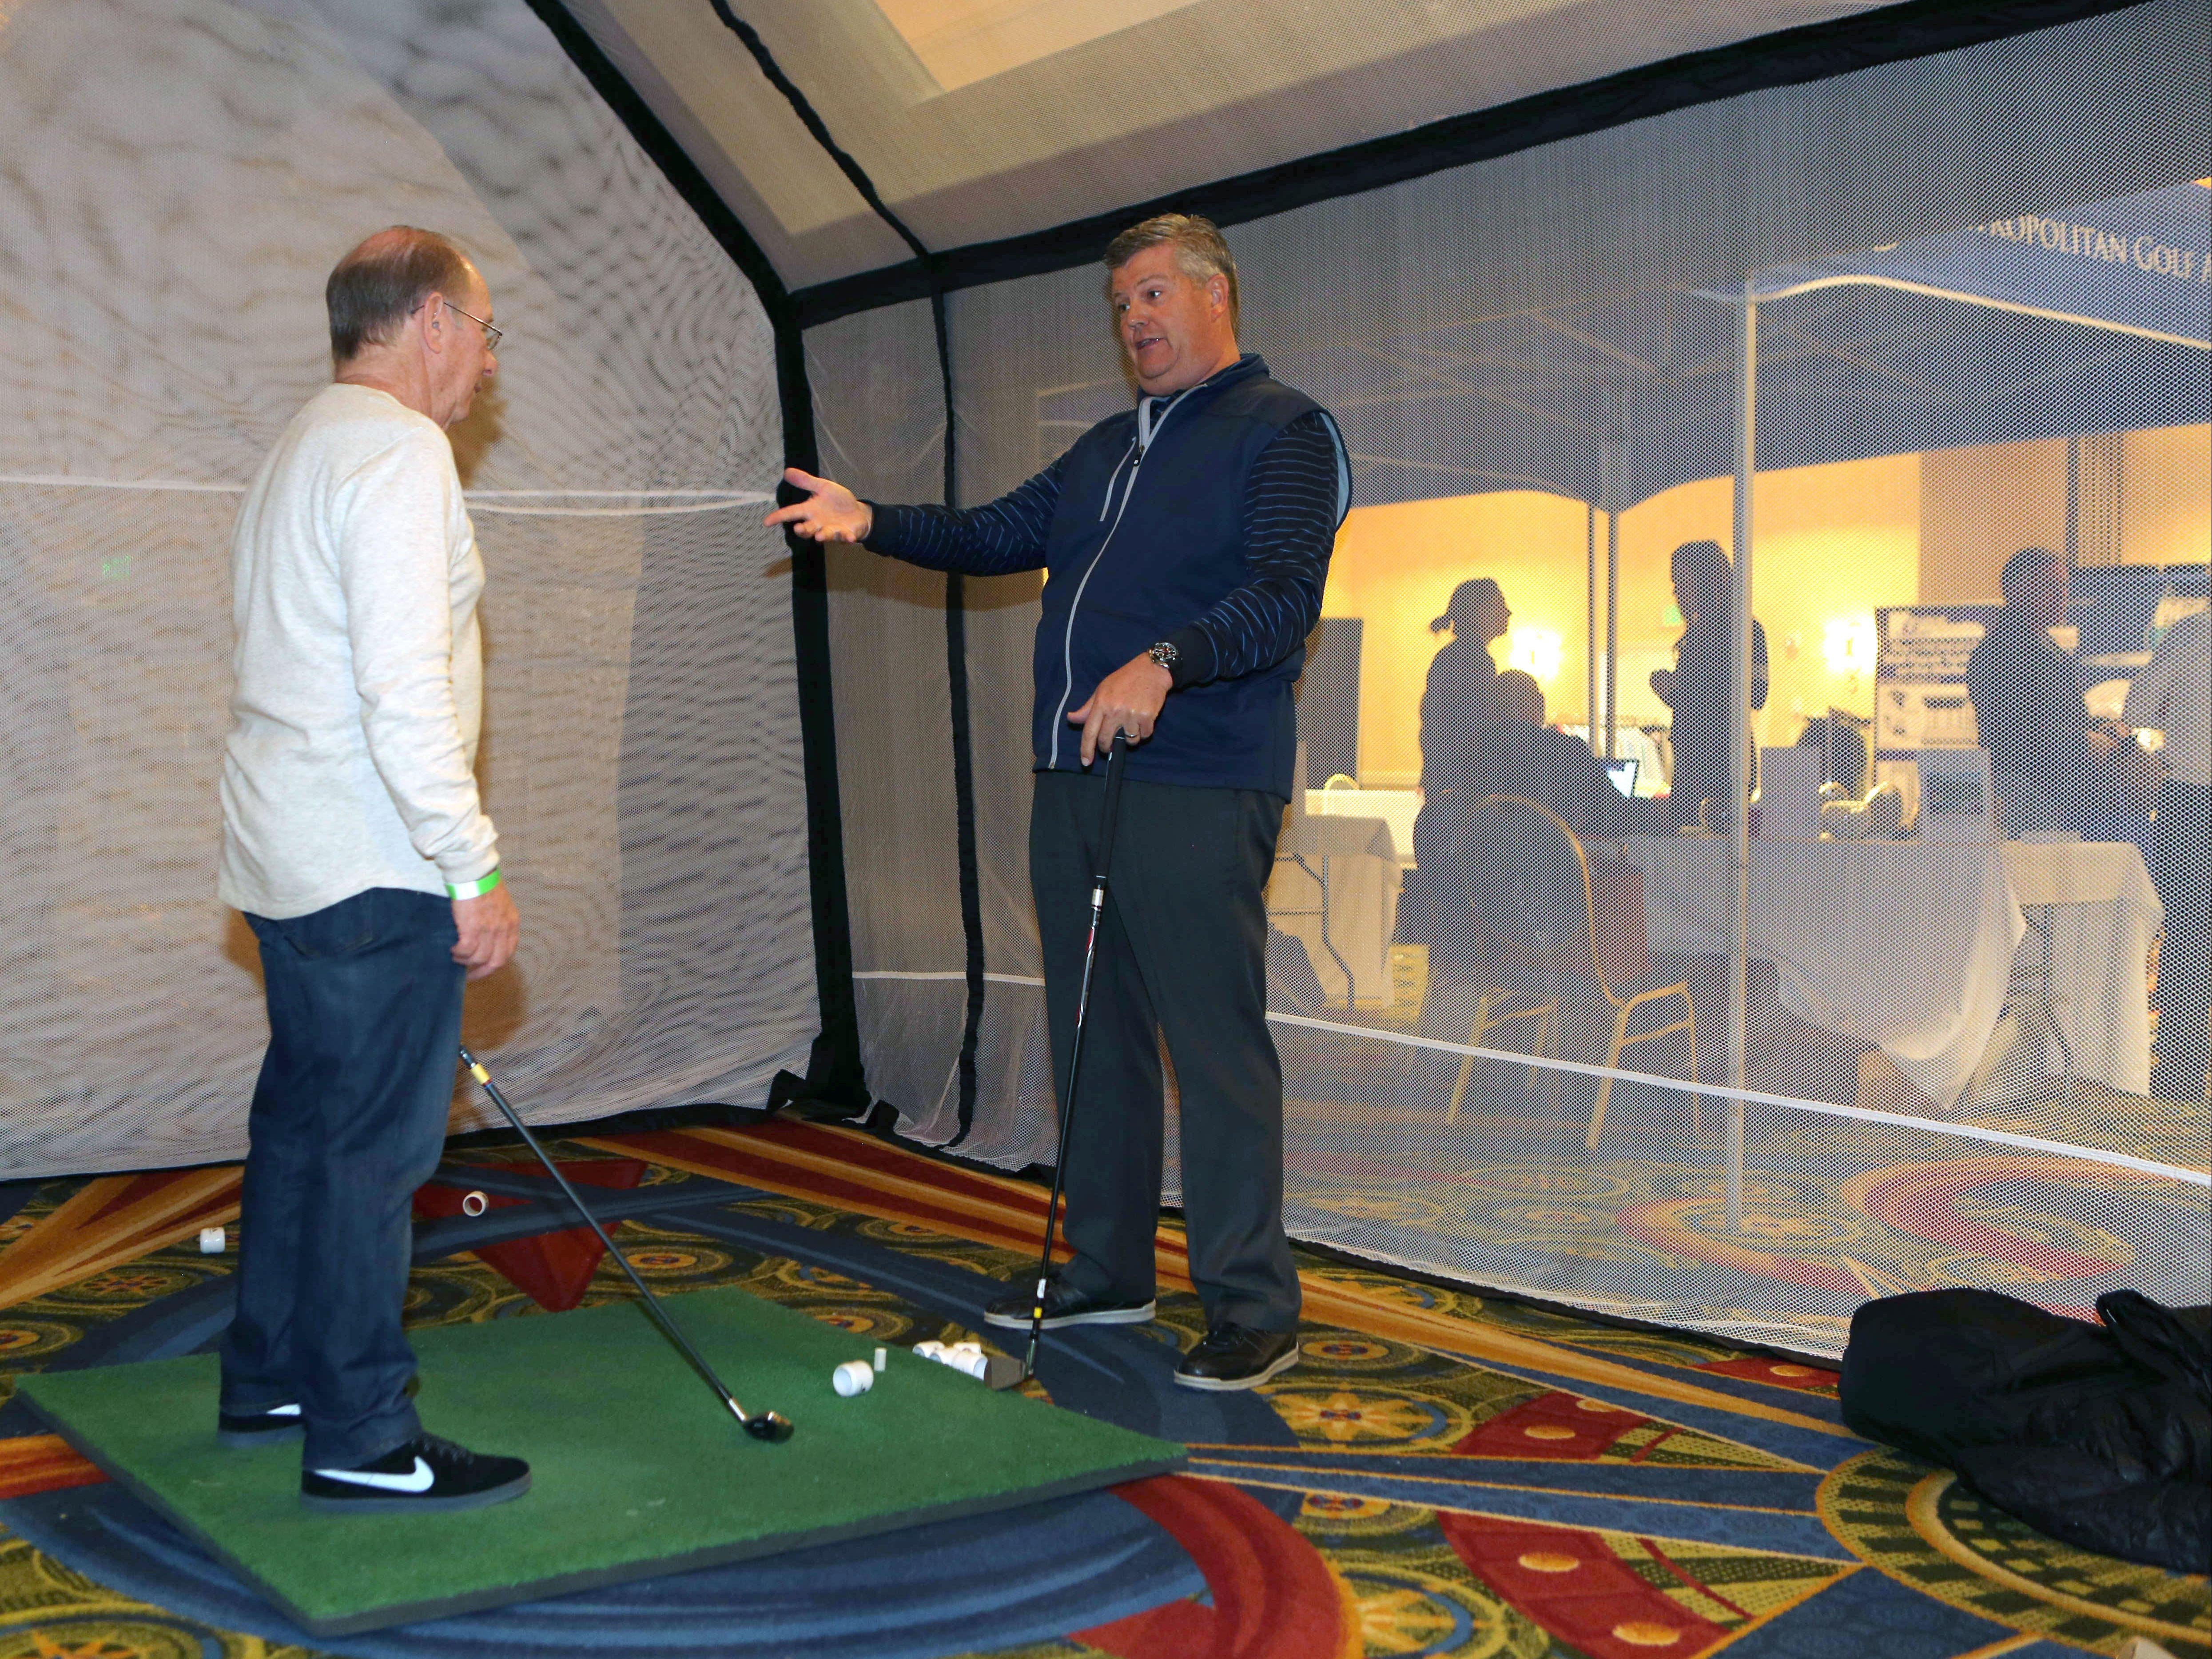 Bill Smittle, right, the head golf pro at Scarsdale Golf Club, gives tips to Ken Weisberger from White Plains, at the lohud.com Golf Show at the Westchester Marriott in Tarrytown, March 12, 2016. The show continues Sunday, March 13, 2016 from 9:00 a.m. till 4:00 p.m.